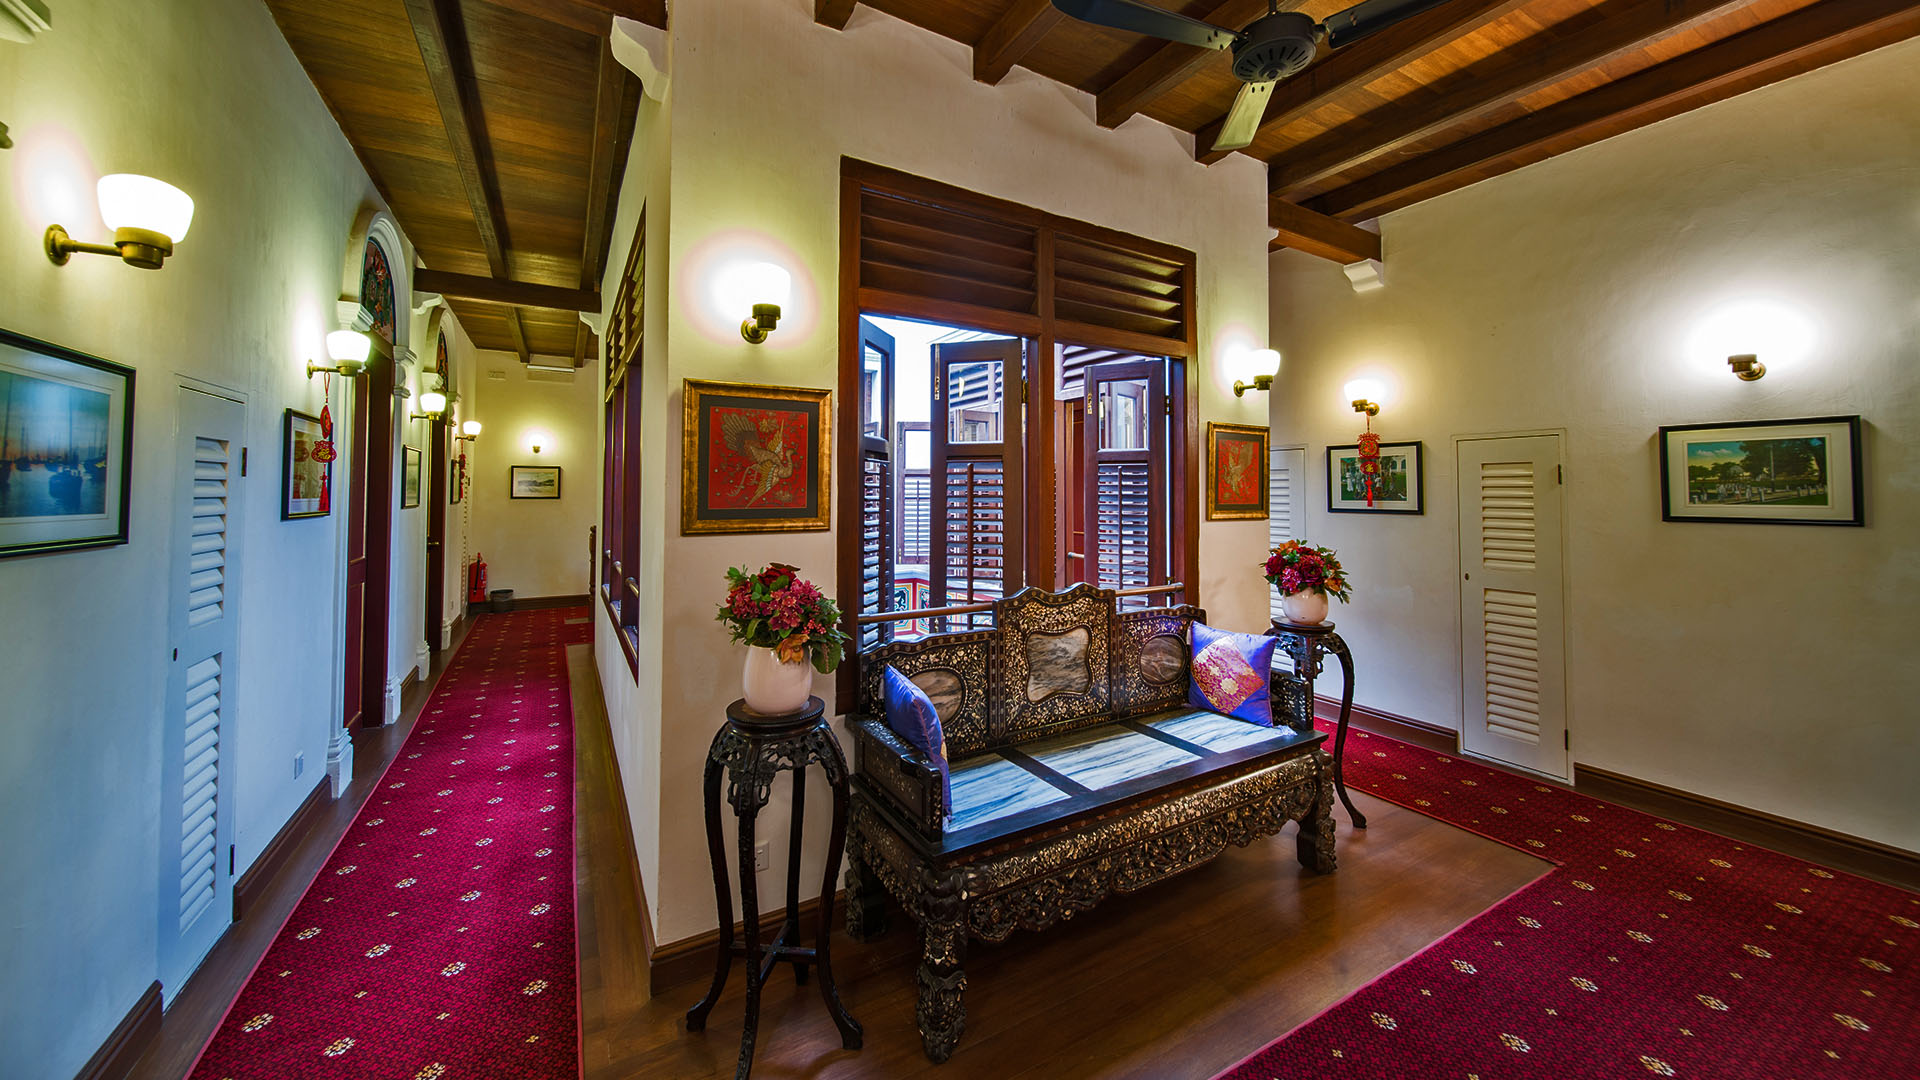 Nam Keng Hotel in City of George Town, Penang, Malaysia